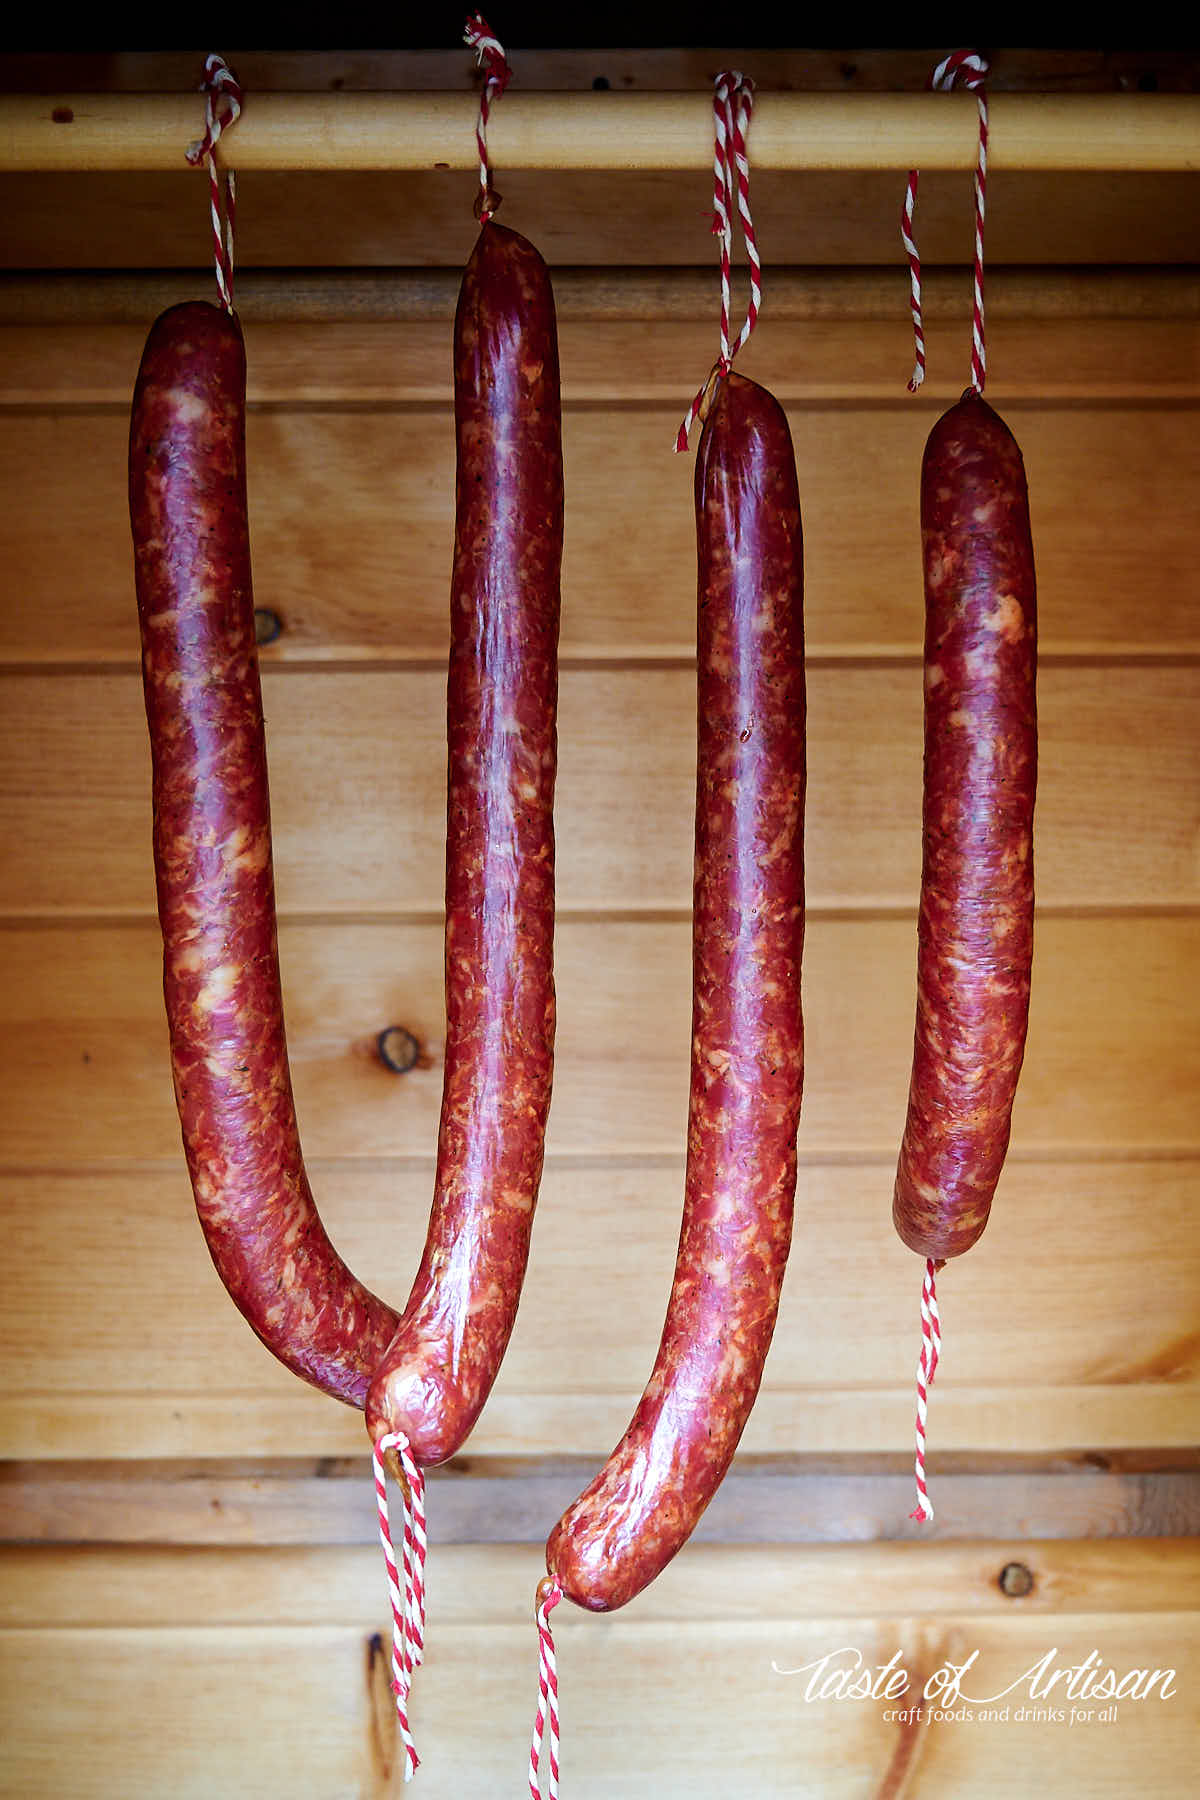 Andouille sausages hanging on a stick and smoking inside a smokehouse.